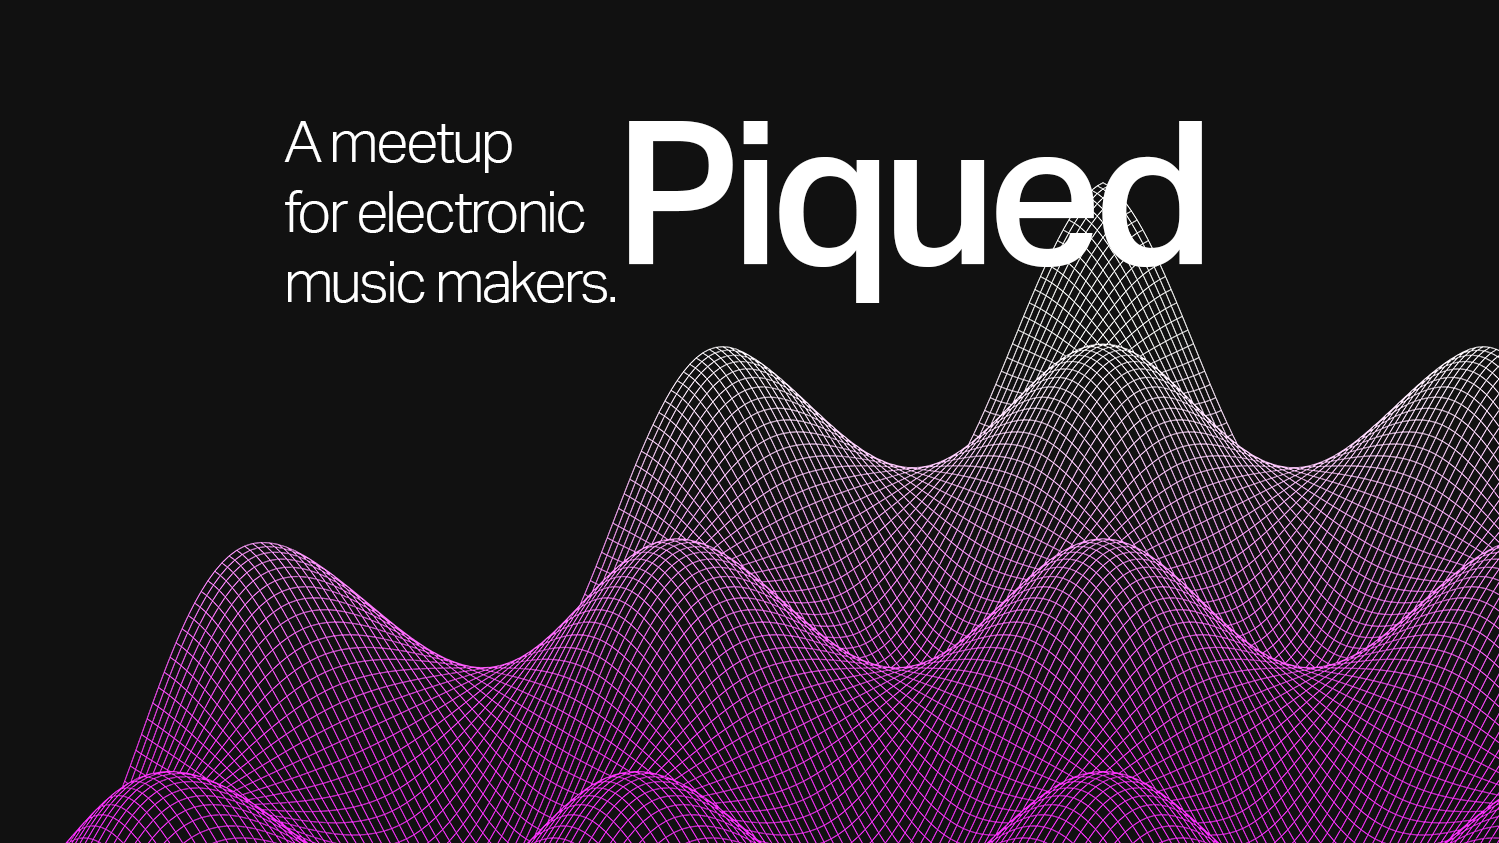 Piqued // A Meetup for Electronic Music Makers